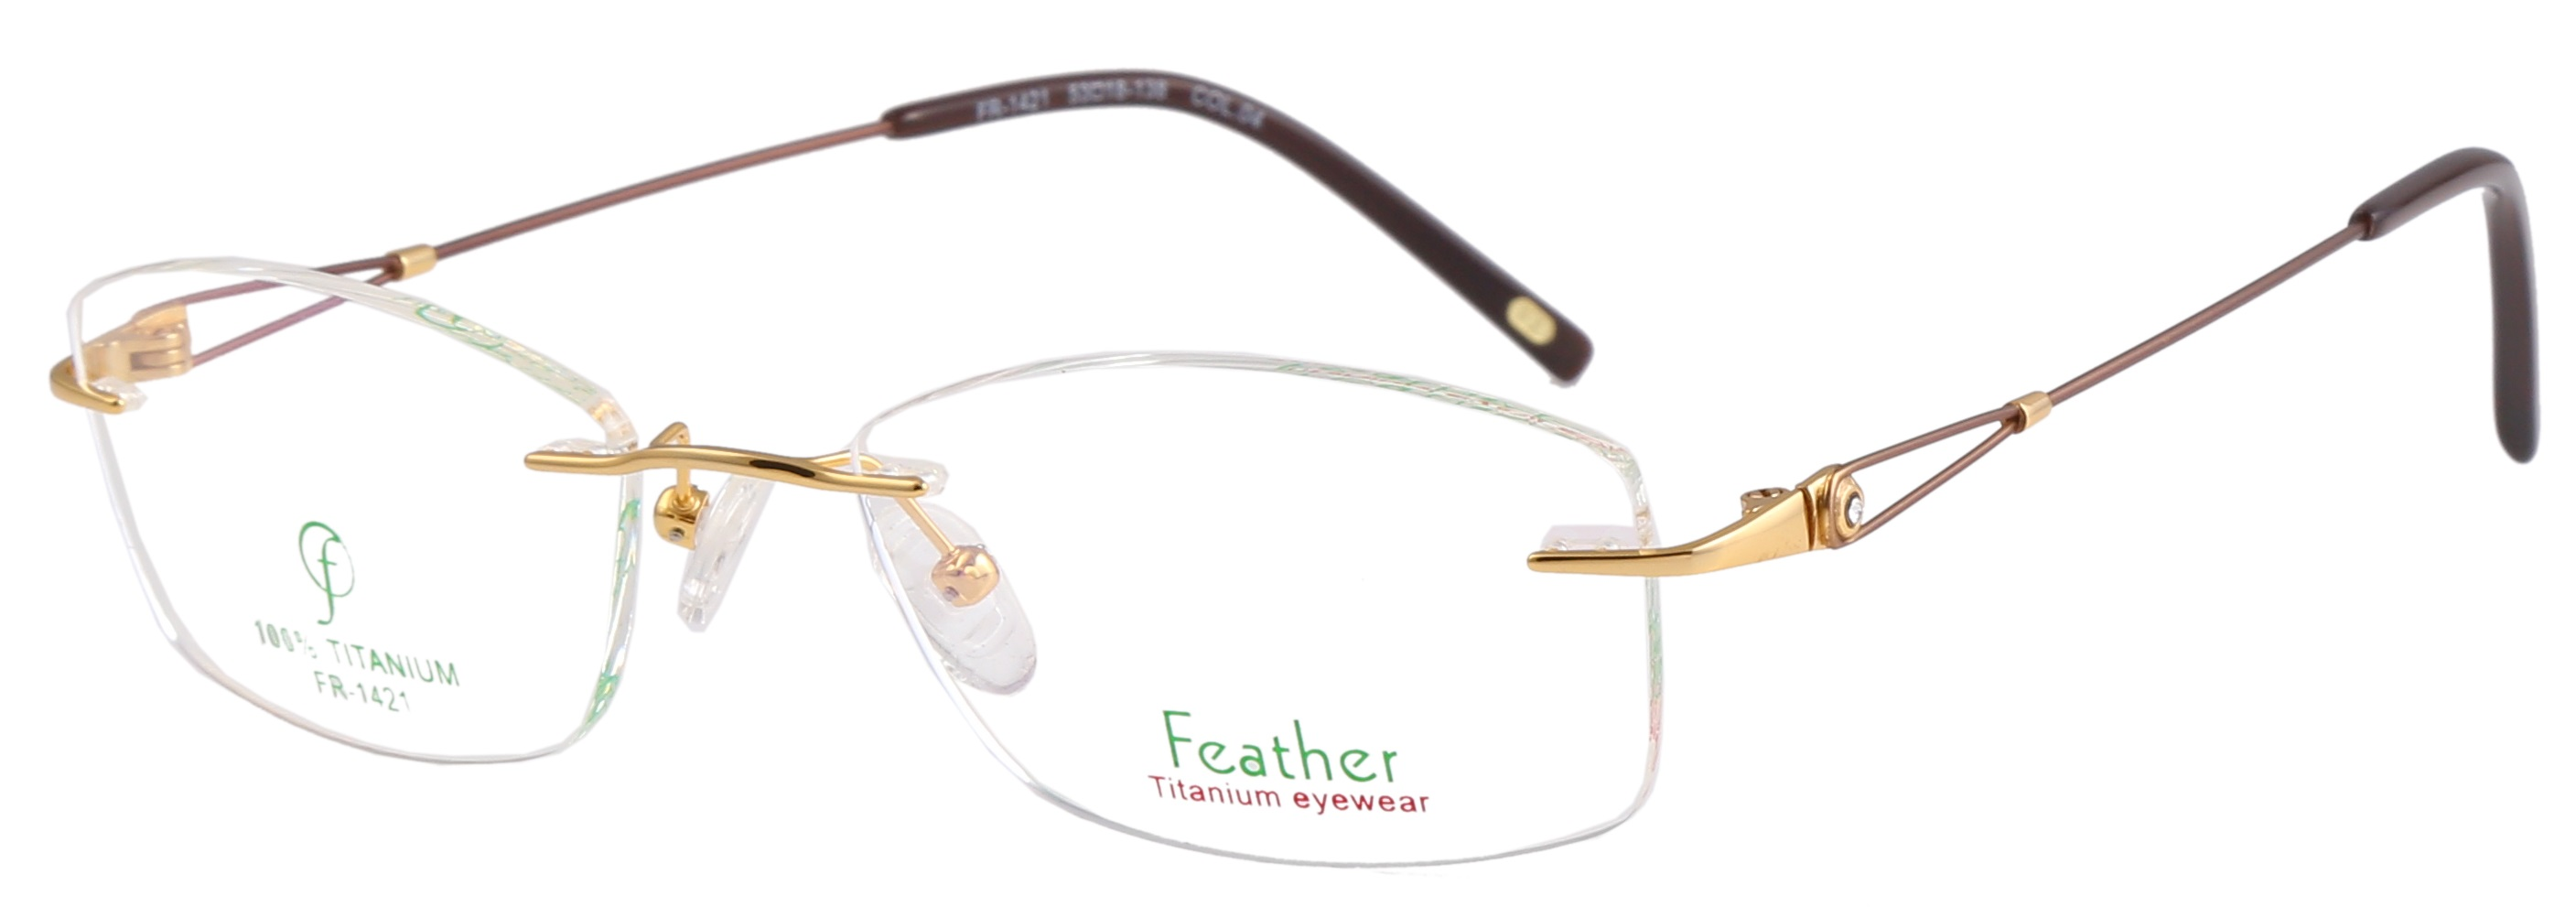 Feather Model No FR-1421